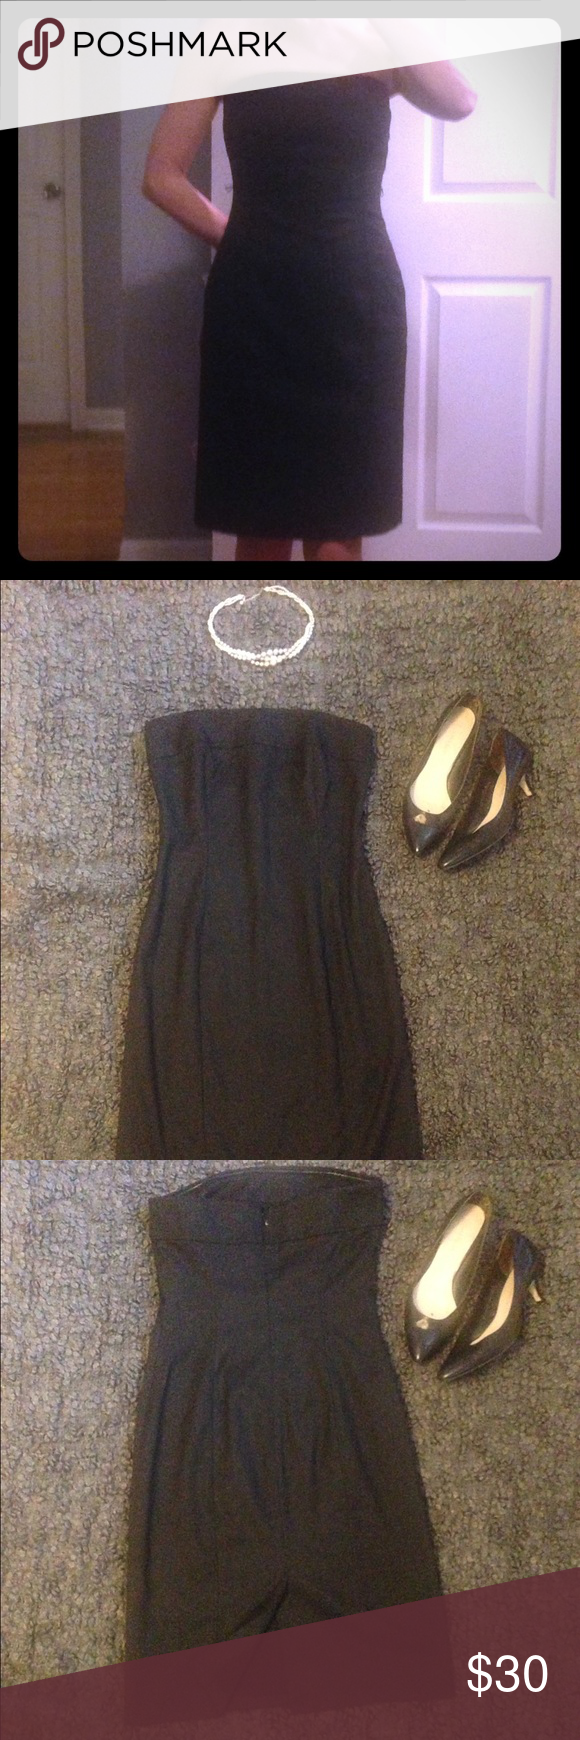 """Strapless LBD with subtle shimmer Classic strapless lbd with all over subtle gray/black shimmer. Two string loops on side that could be used to hold a belt or be cut off. Perfect condition, worn once. Classy and hits at knee on me (5' 6""""). The Limited Dresses Strapless"""